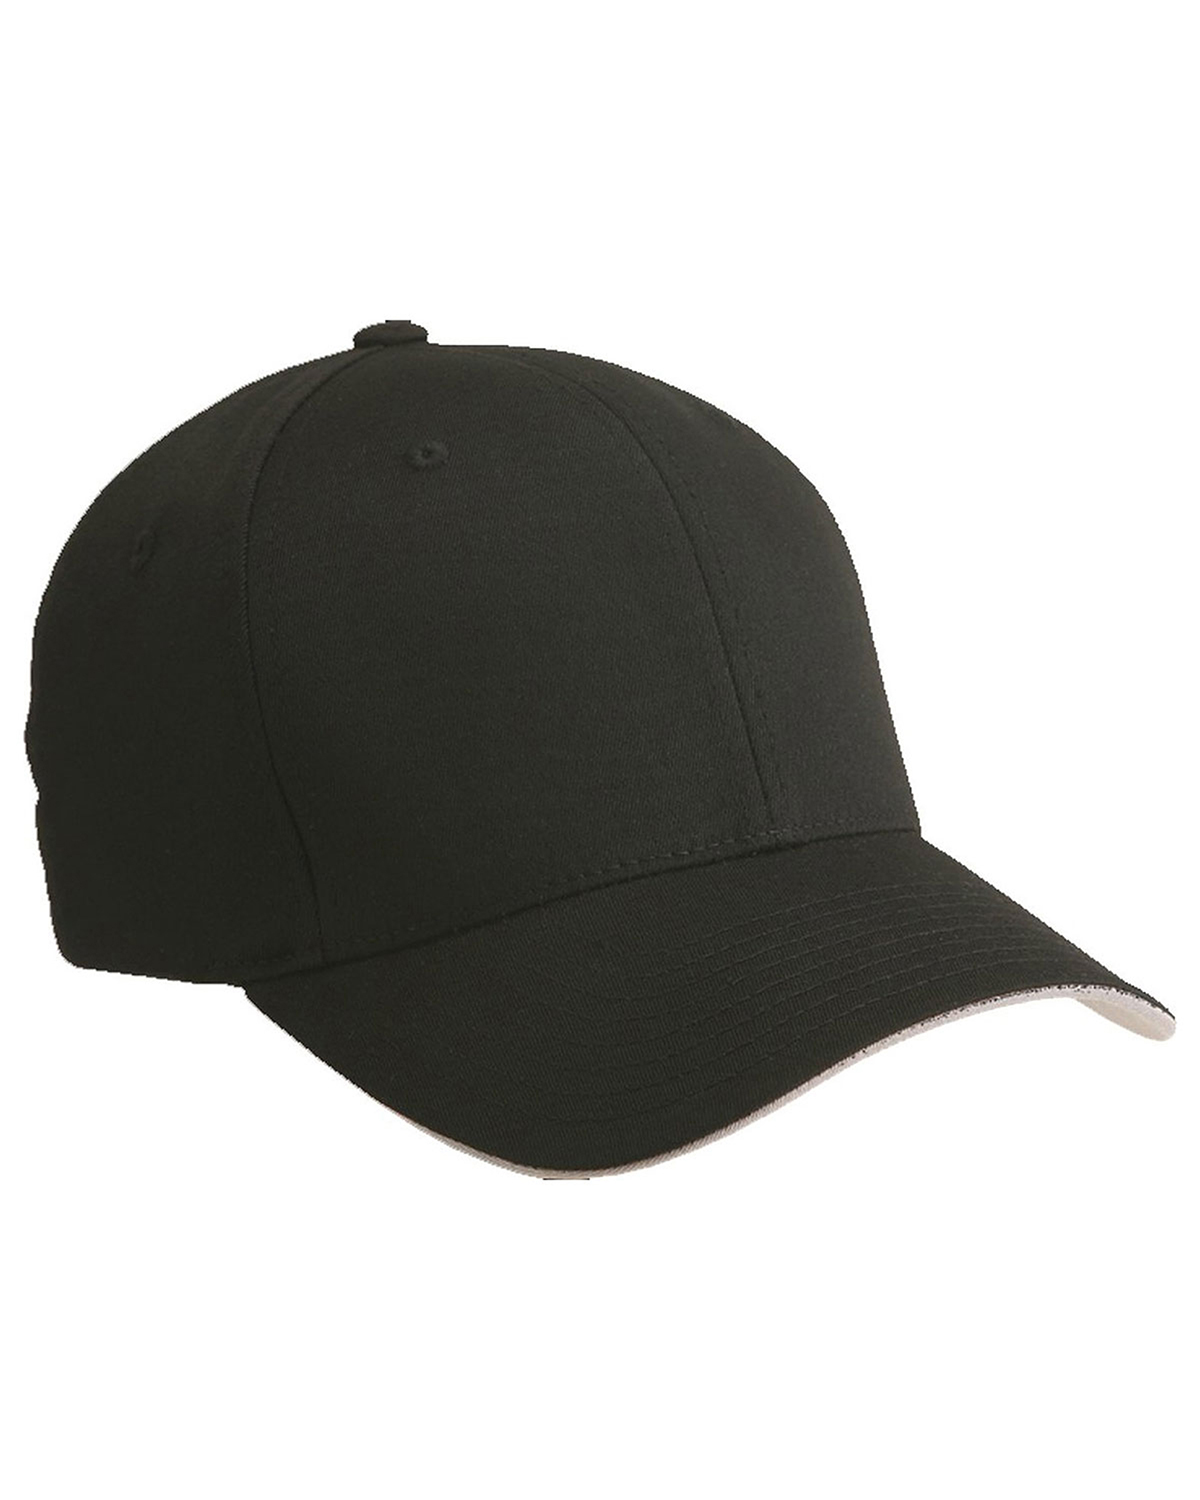 Yupoong 6077 Unisex Cool & Dry Sandwich Cap at GotApparel